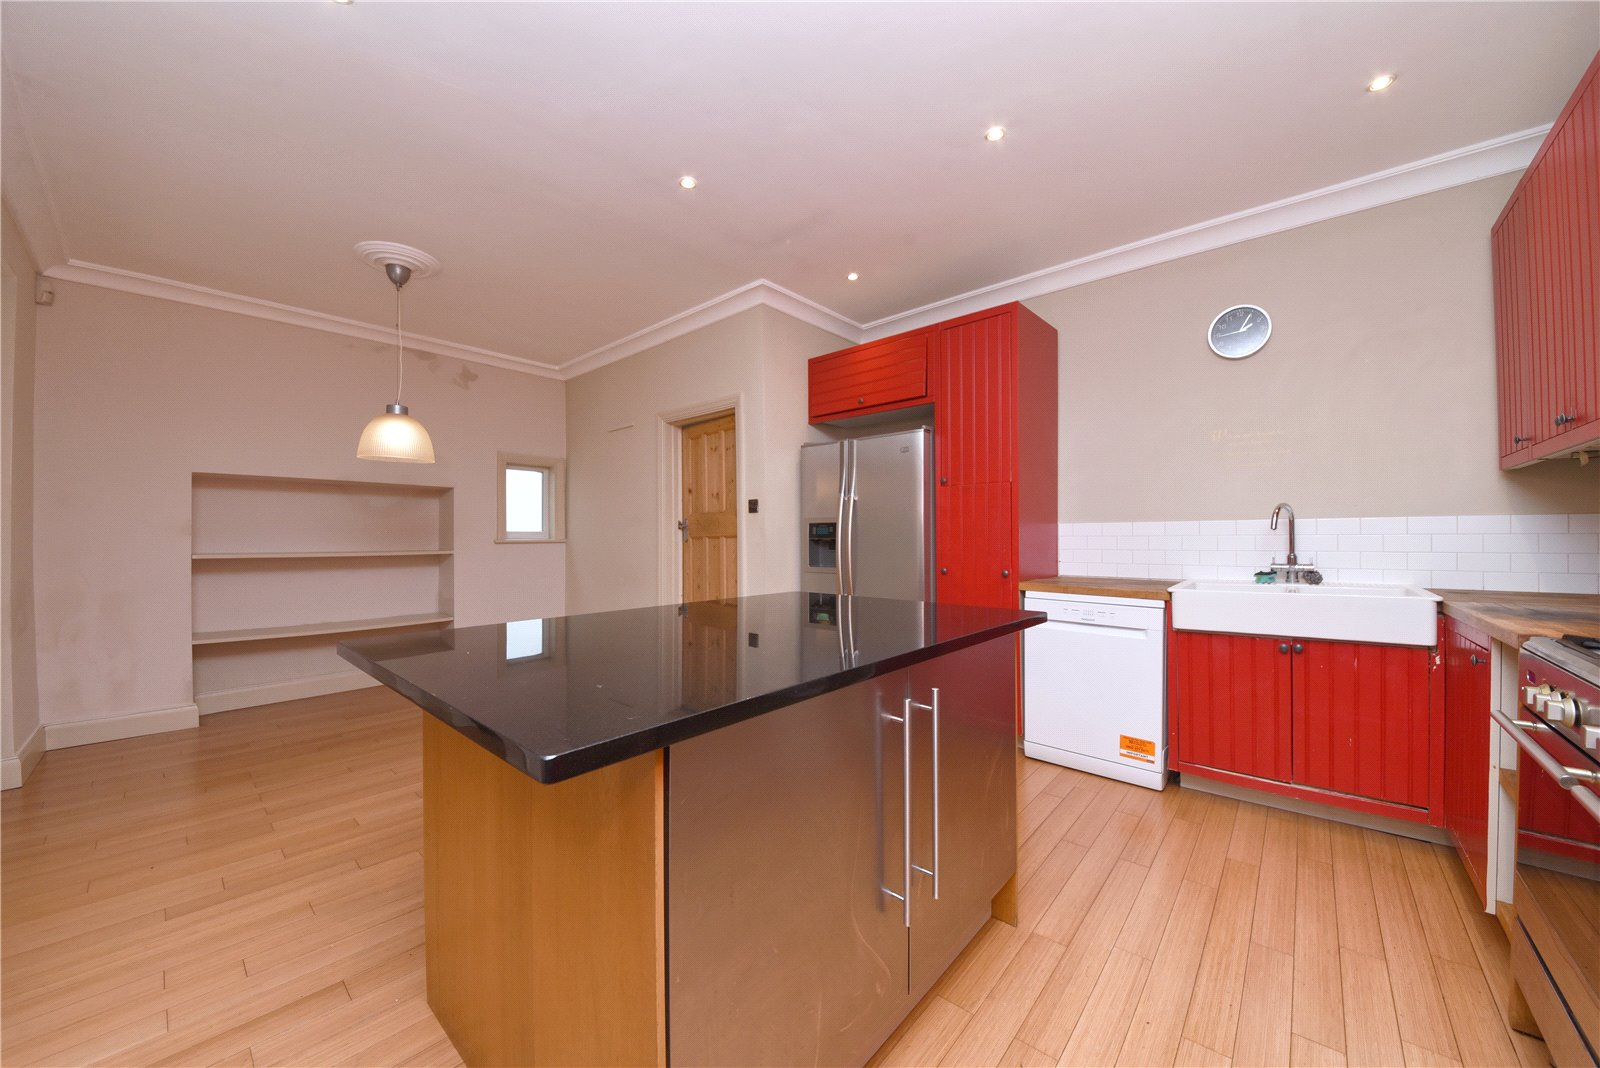 4 bed house to rent in Longland Drive, Totteridge  - Property Image 5